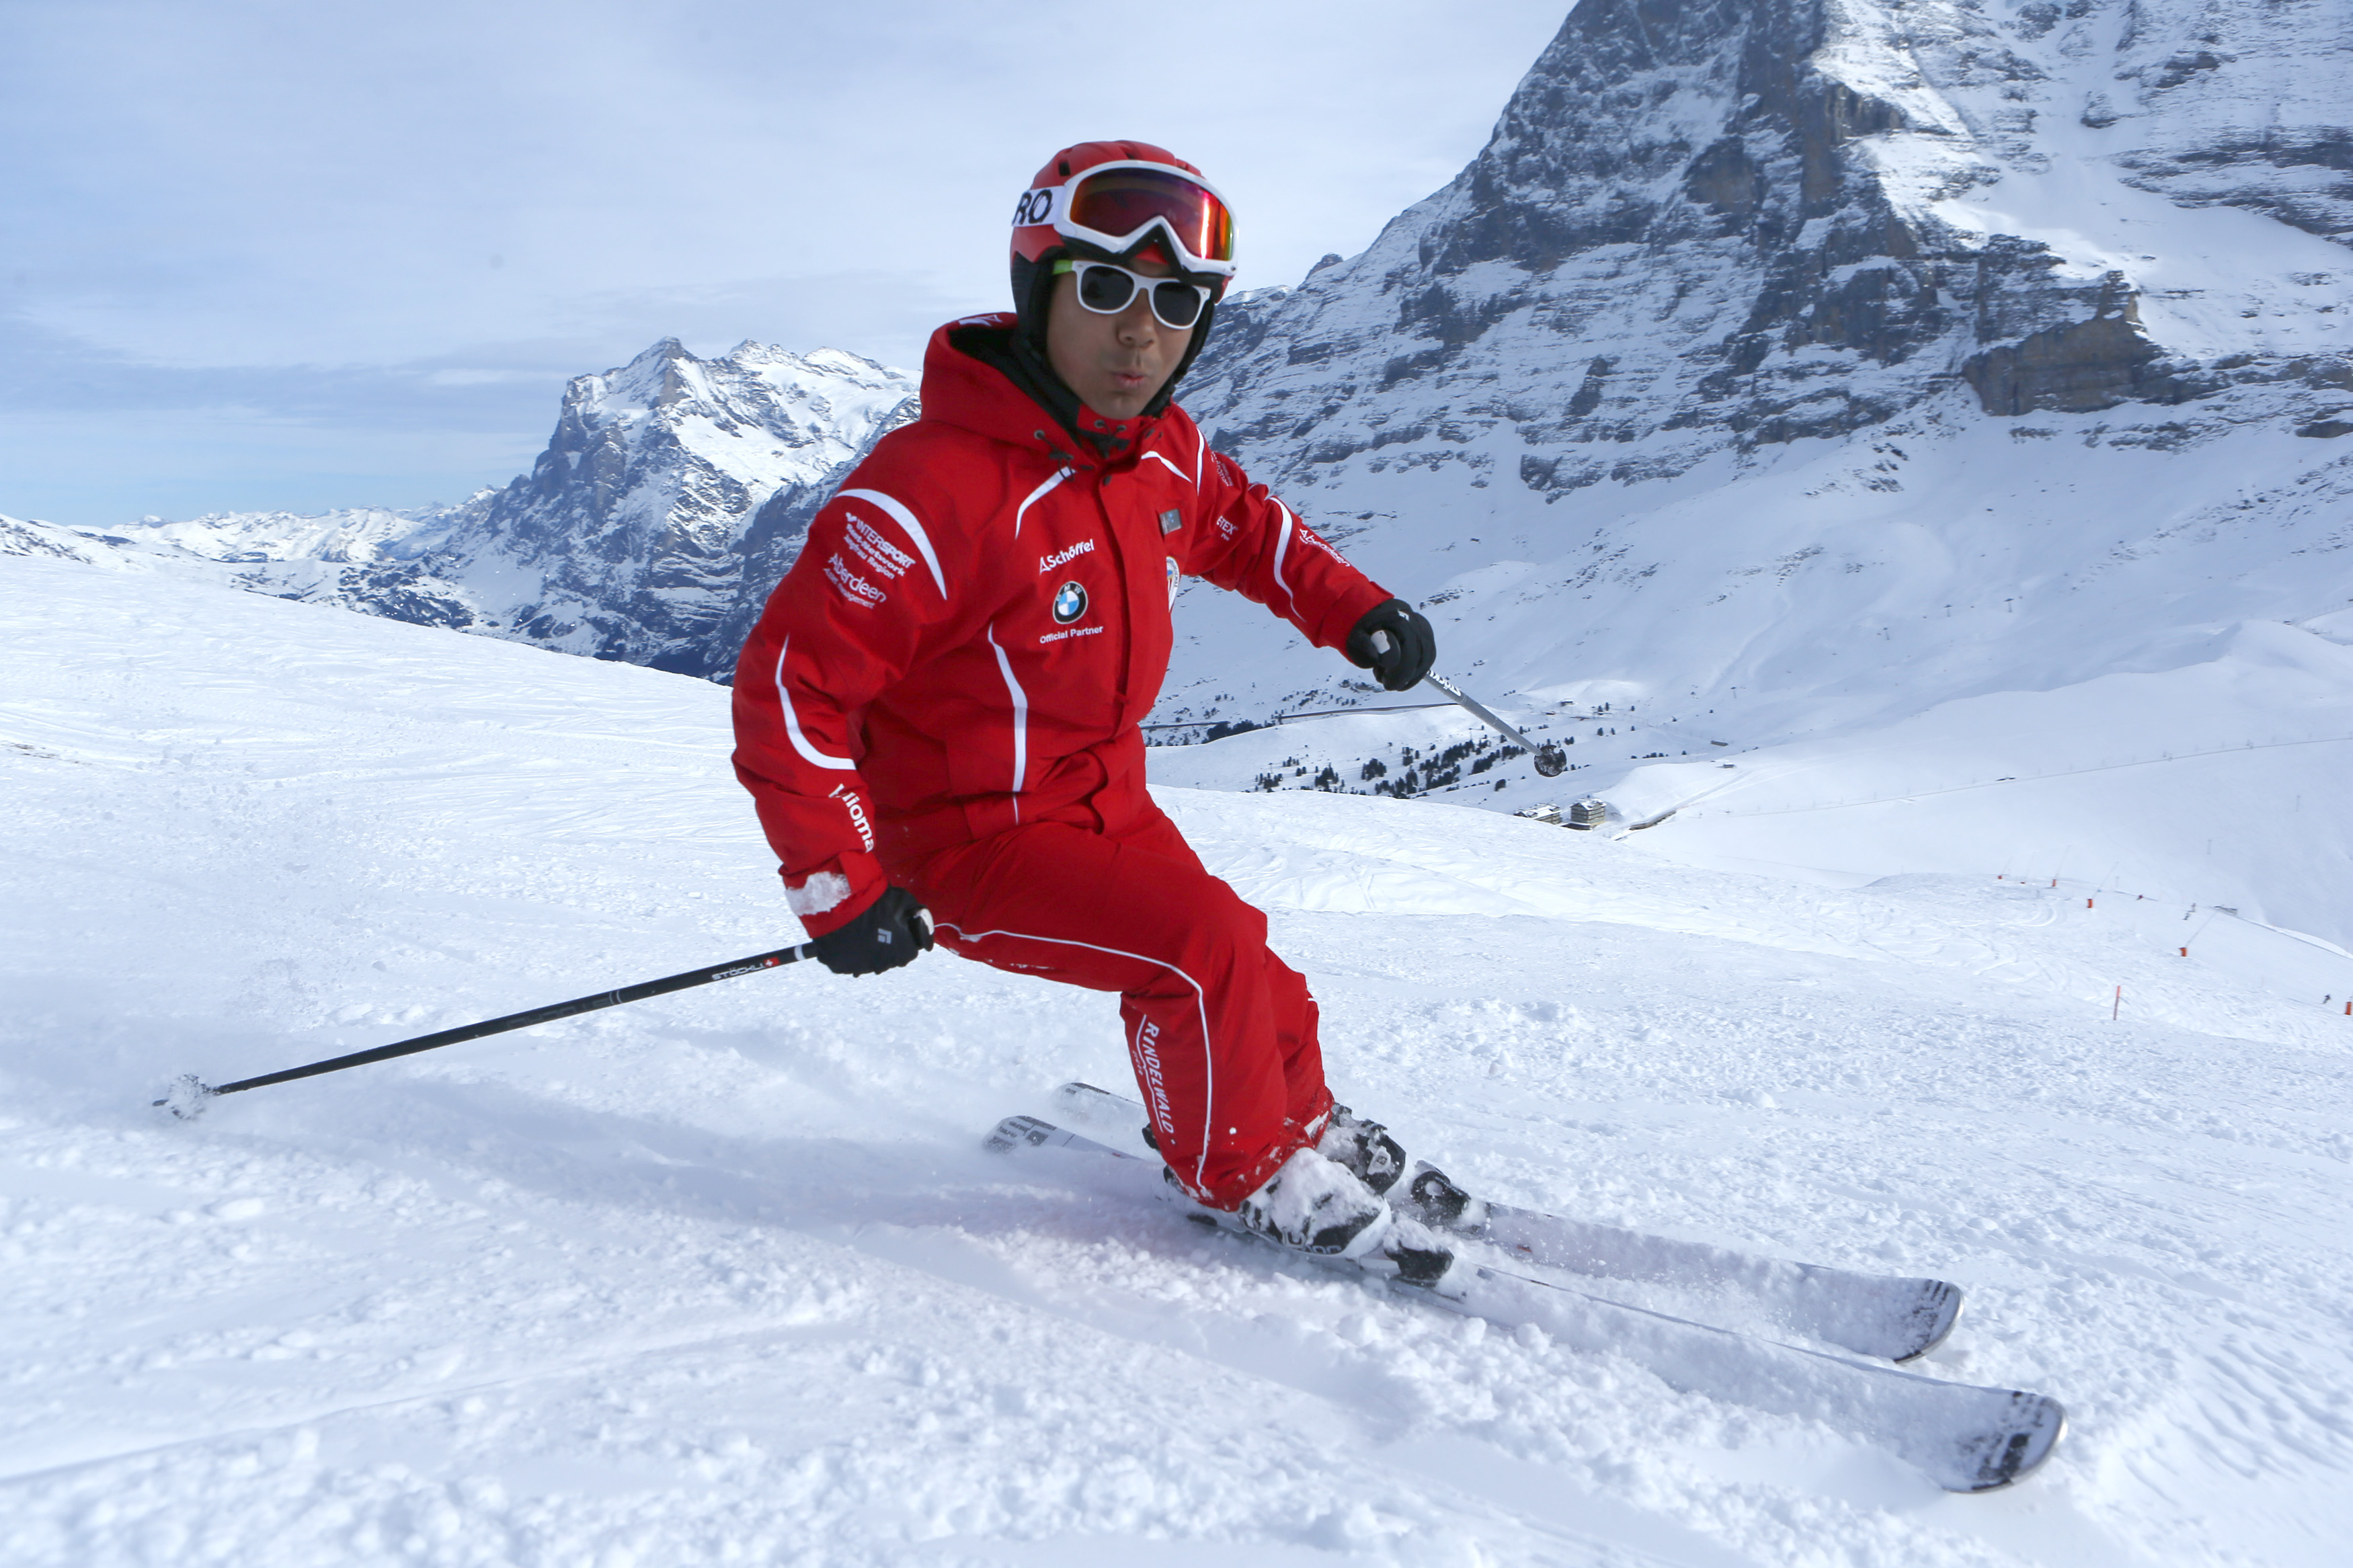 Chinese ski instructor Xu Zhongxing (L) skis on the Lauberhorn in front of the Eiger north face in the ski resort of the Jungfrau region, Jan. 8, 2014.